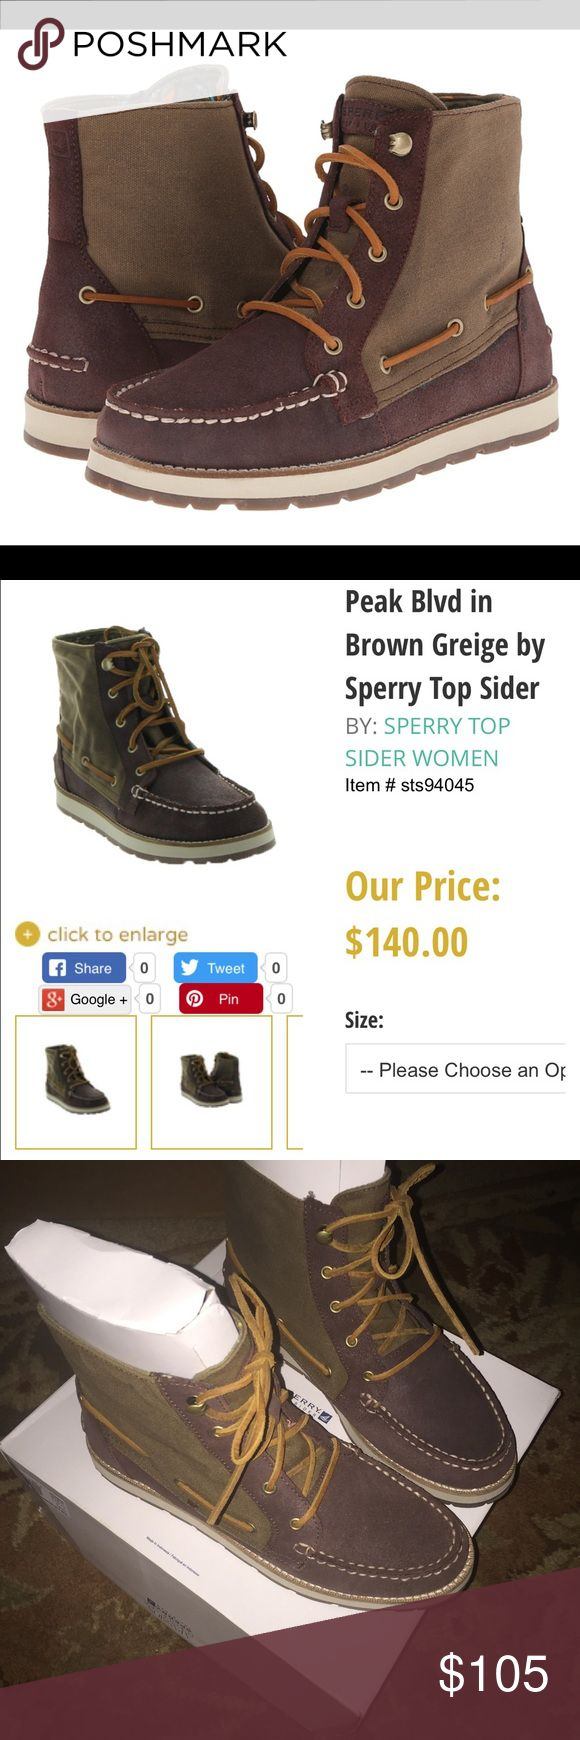 Like New Sperry Boots ✨PLEASE READ sizing details✨These are practically BRAND NEW! Only worn once. I paid $159.00, and now even on sale they are $140...... and very hard to find! The price isn't negotiable, because again these are in NEW condition. I am a size: 10 in every shoe. These are a size 9.5, but they run big, so they fit a size: 10 good, with a little extra room. PRICE FIRM Sperry Top-Sider Shoes Ankle Boots & Booties